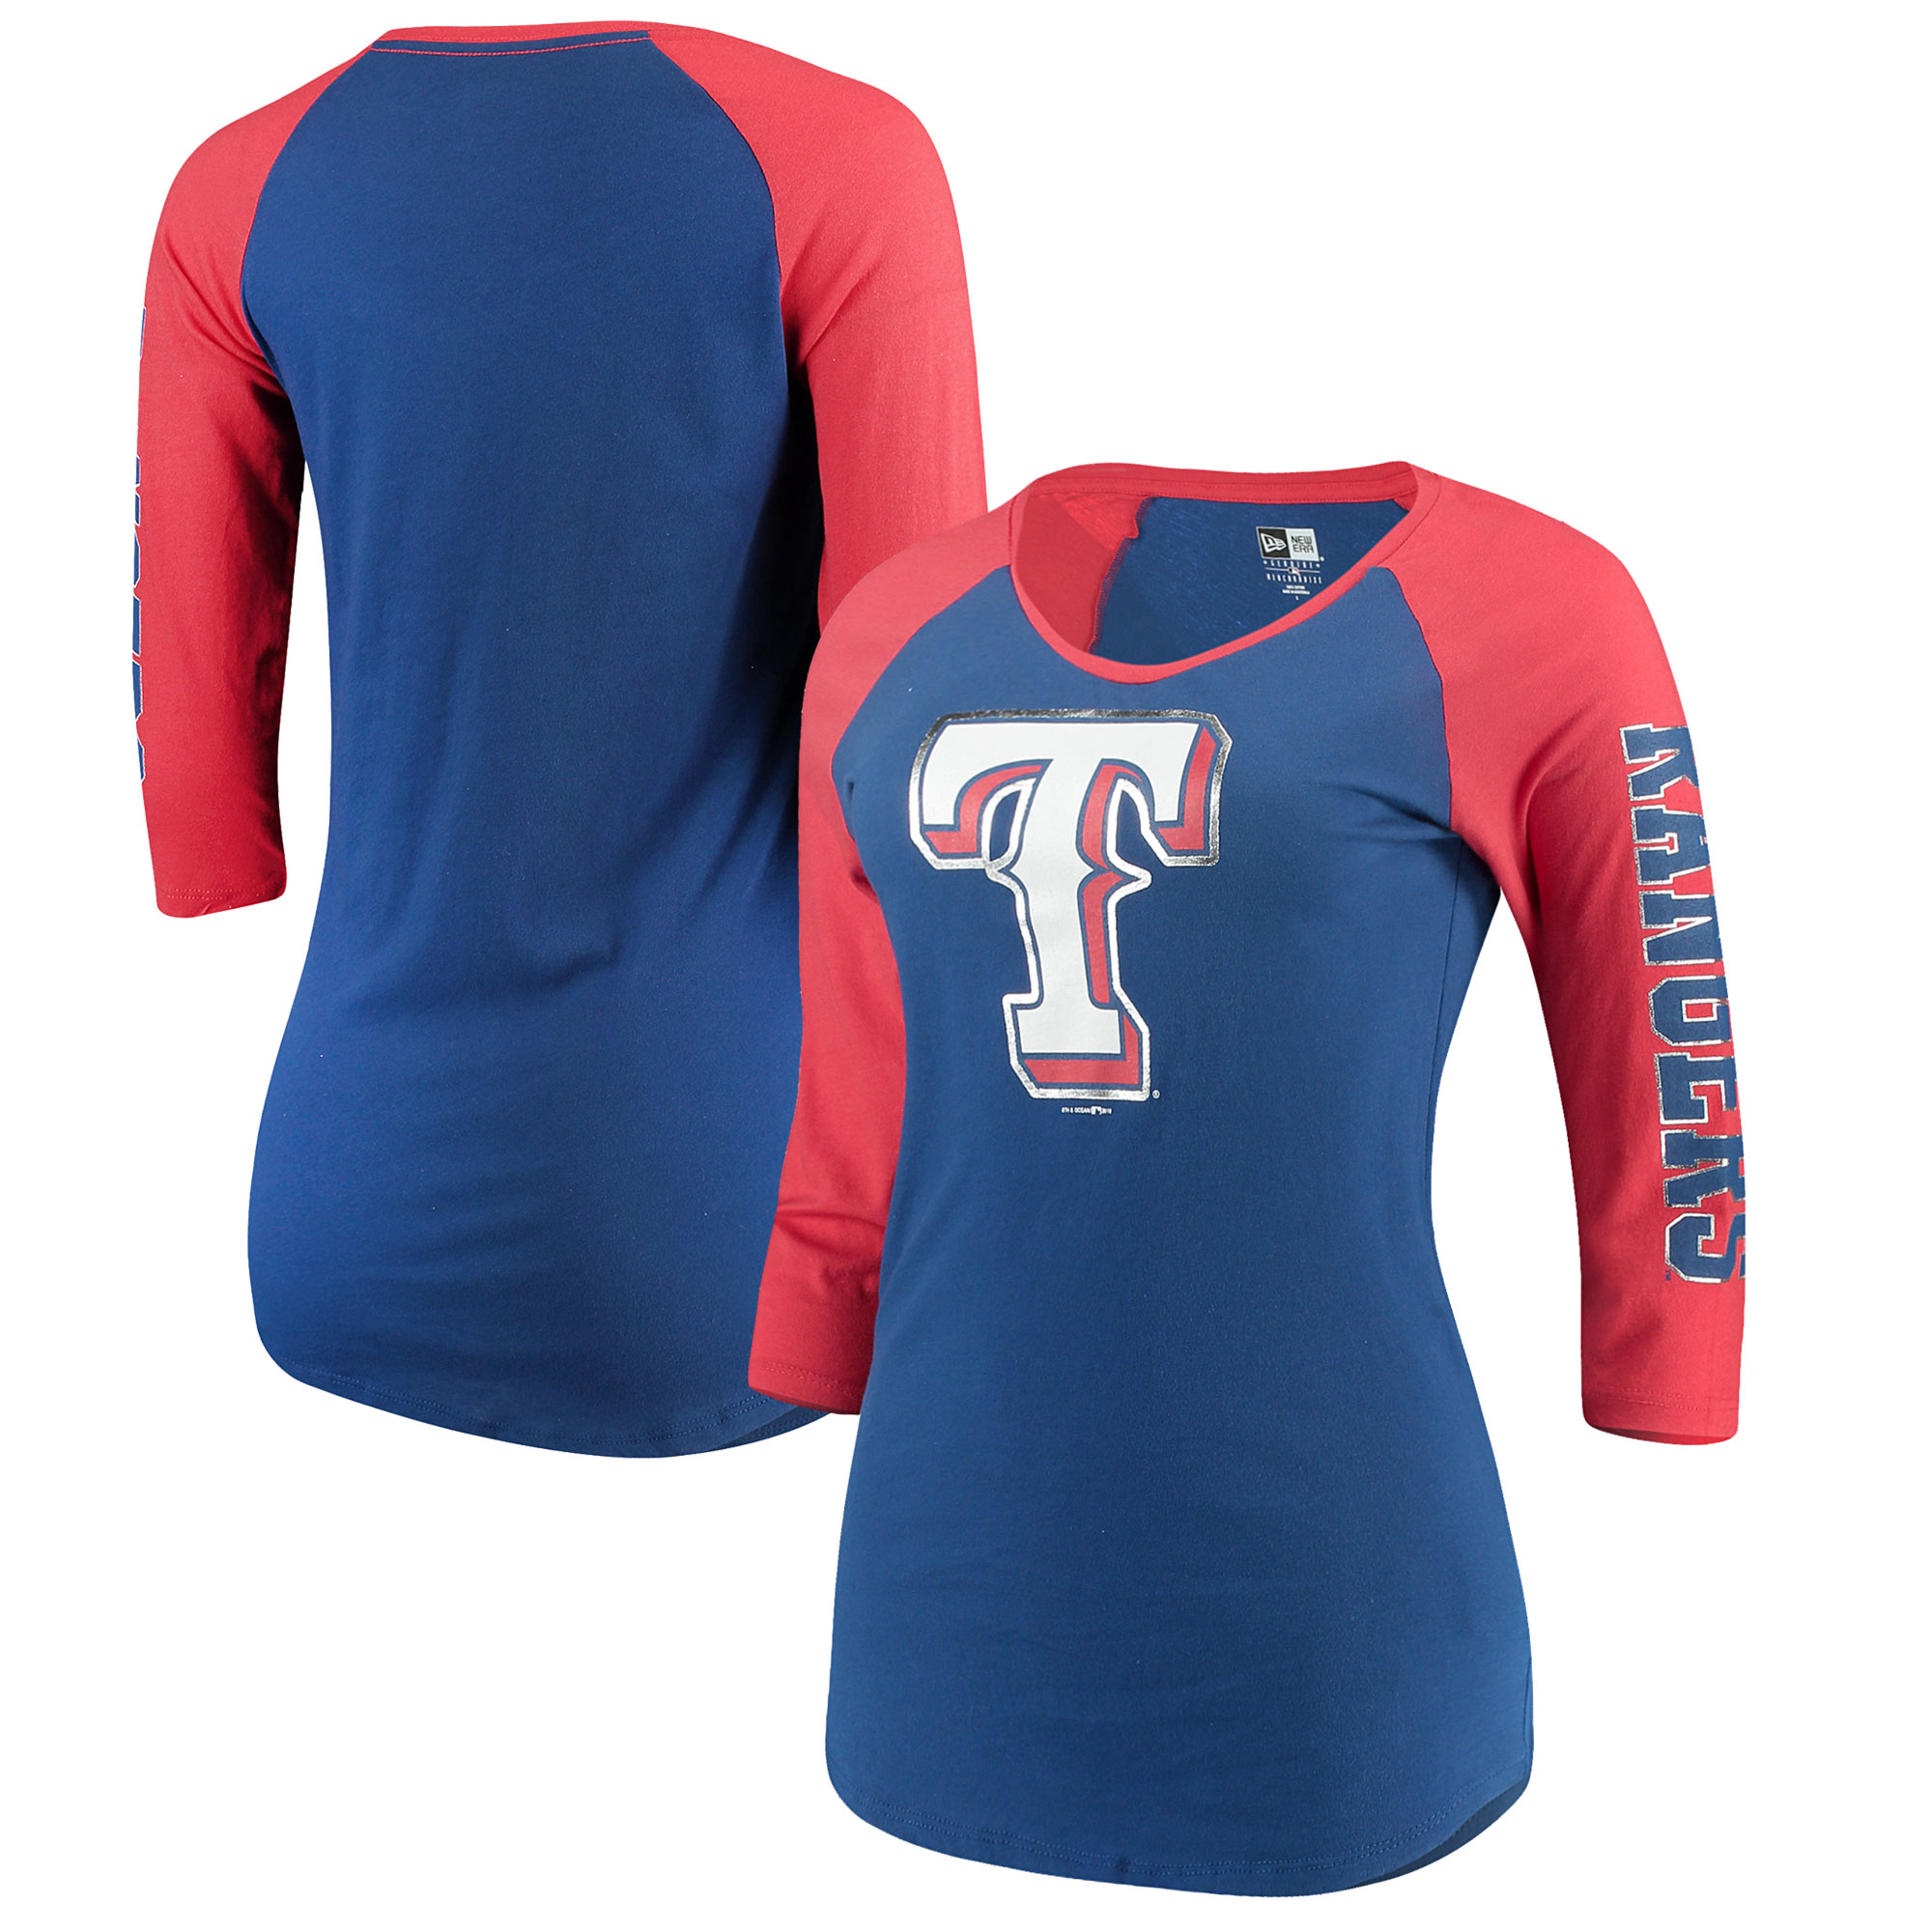 Texas Rangers 5th & Ocean by New Era Women's Foil 3/4-Sleeve T-Shirt - Royal/Red